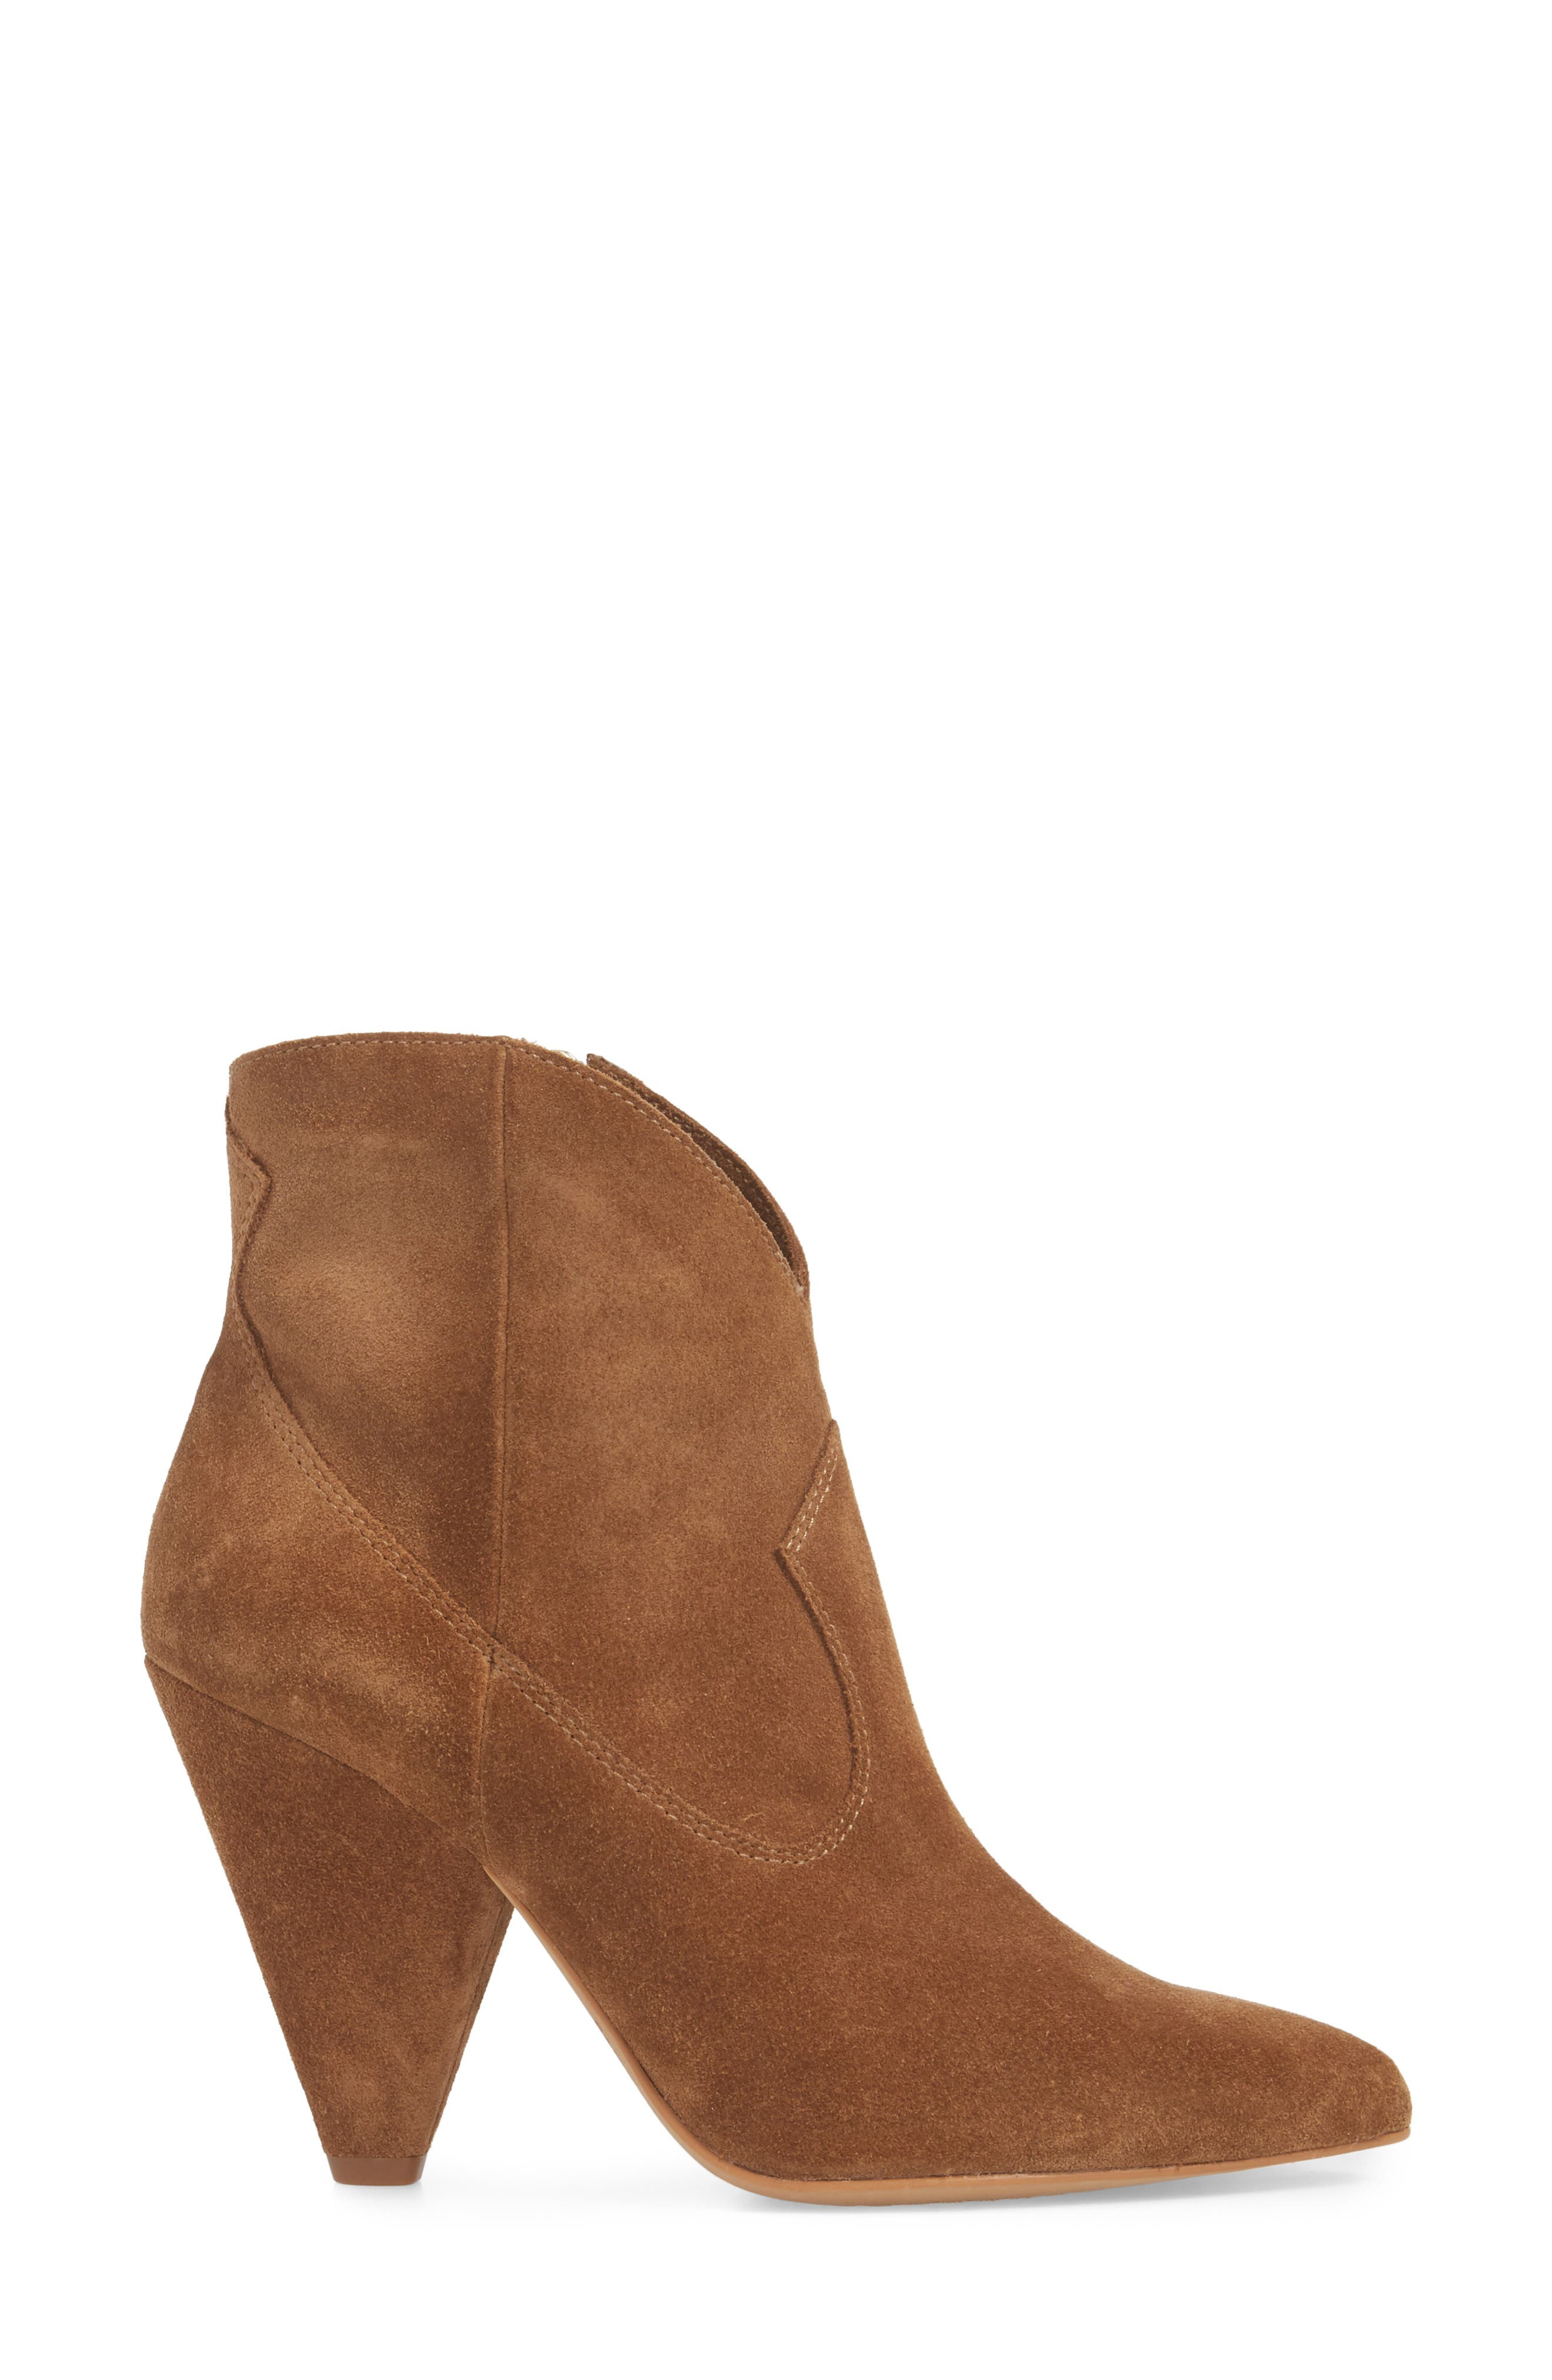 Movinta Bootie,                             Alternate thumbnail 3, color,                             Tree House Suede